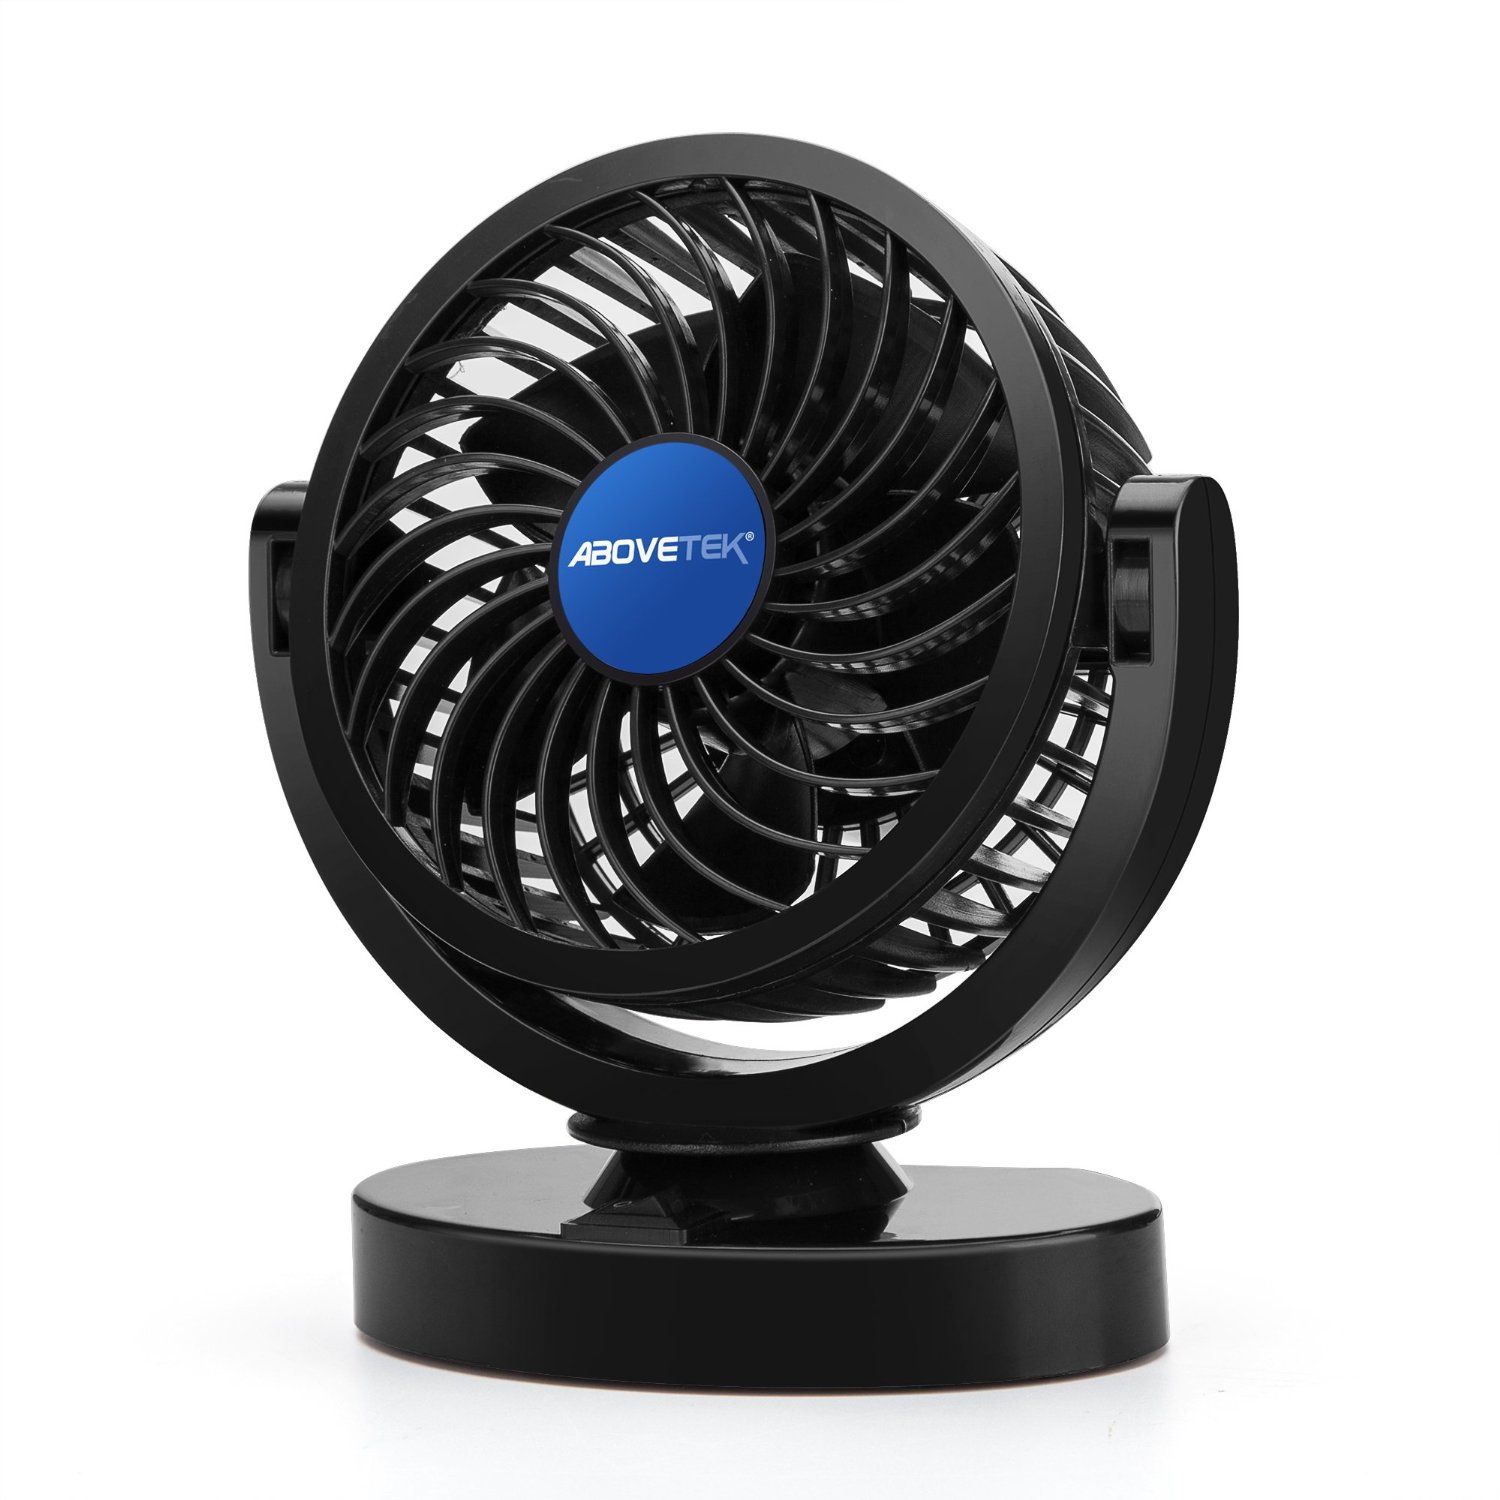 Quiet Strong Dashboard Cooling Fan for Sedan SUV RV Boat Auto Vehicles Odors Effectively Blow Out Hot Air Rotatable 2 Speed Dual Blade with 9FT Cord Smoke AboveTEK 12V DC Electric Car Fan